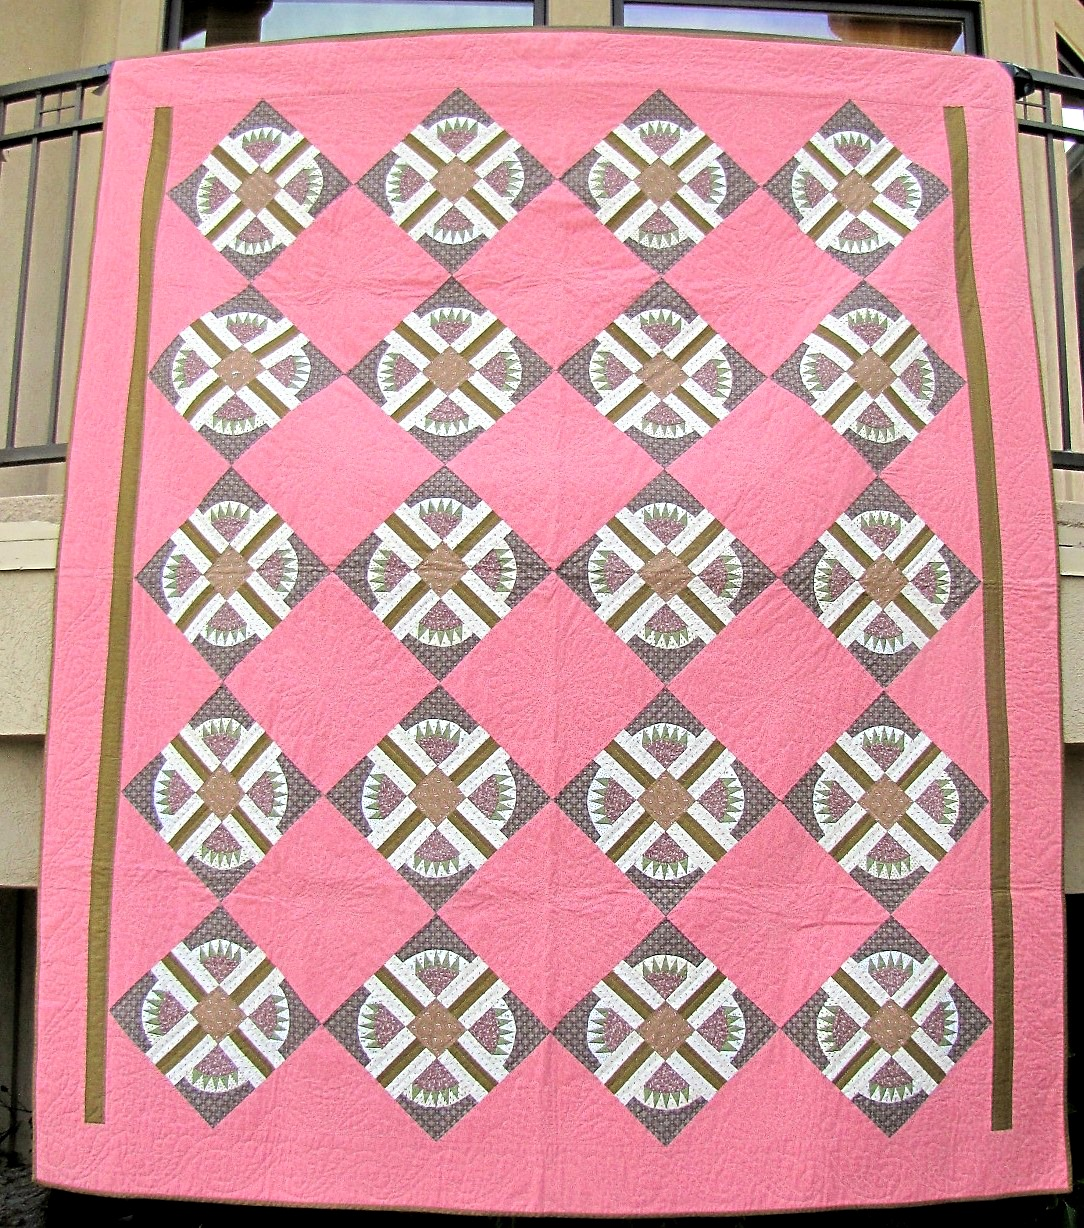 timeless reflections: Part of My Quilt Journey